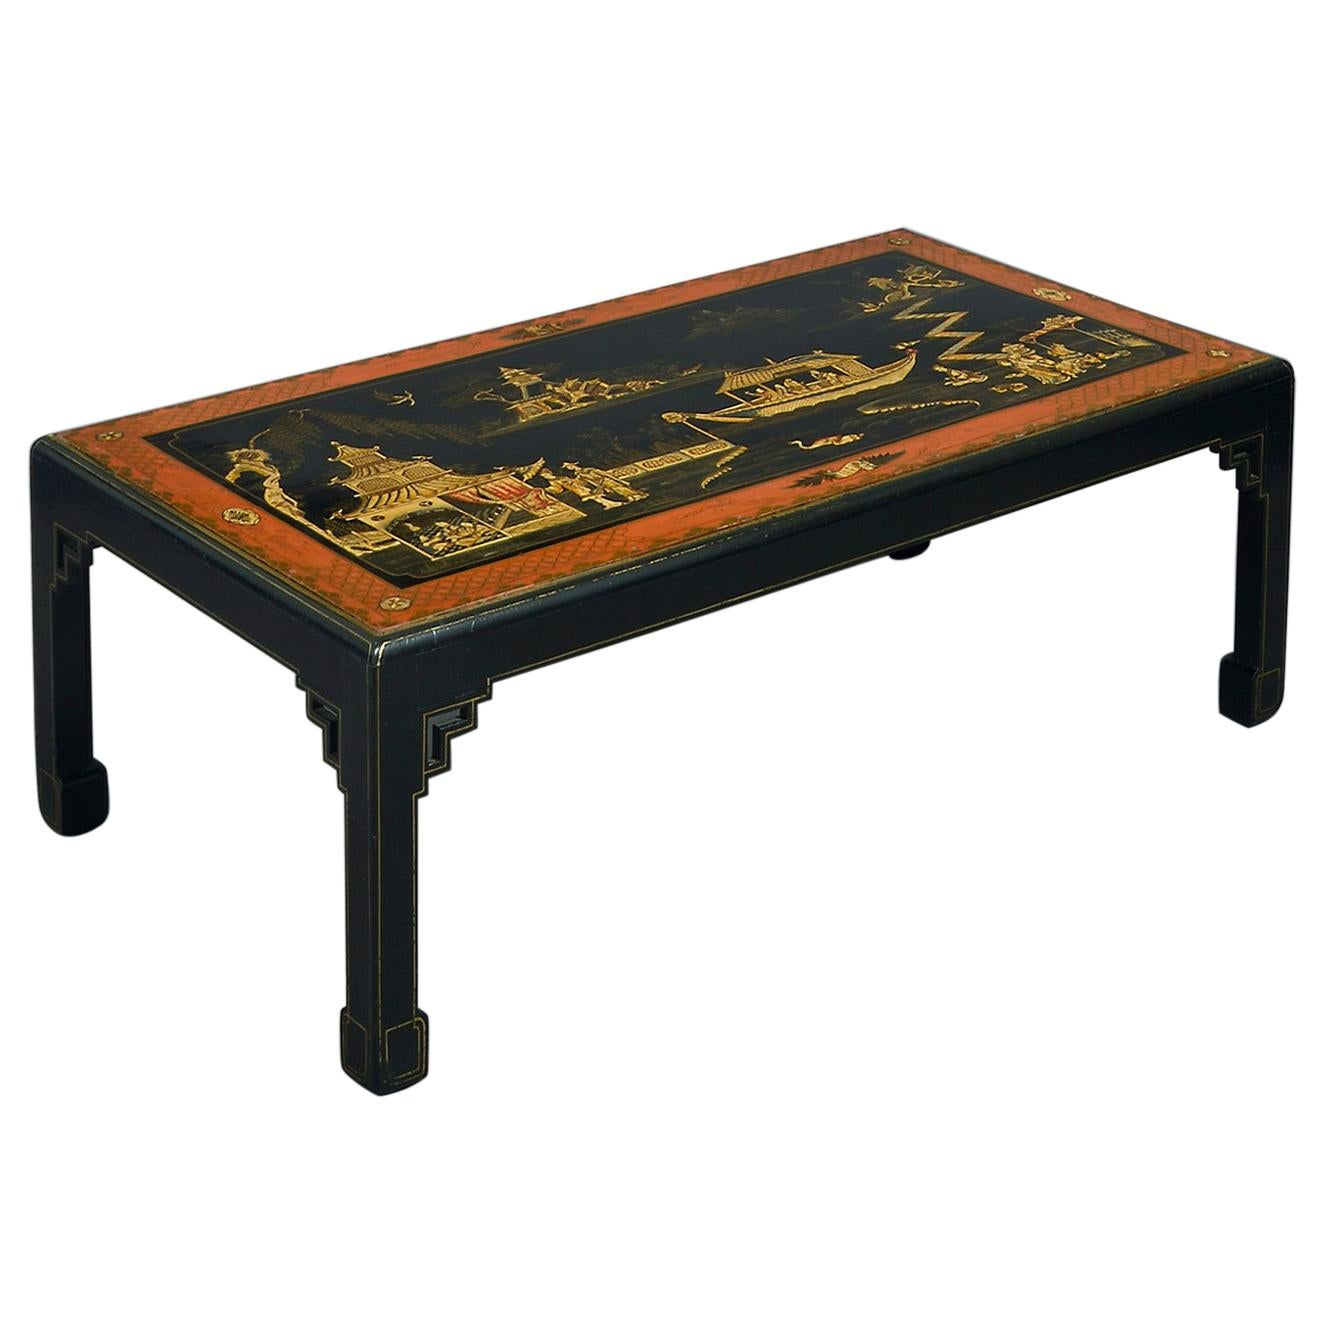 Early 20th Century Chinoiserie Lacquer Coffee Table or Low Table